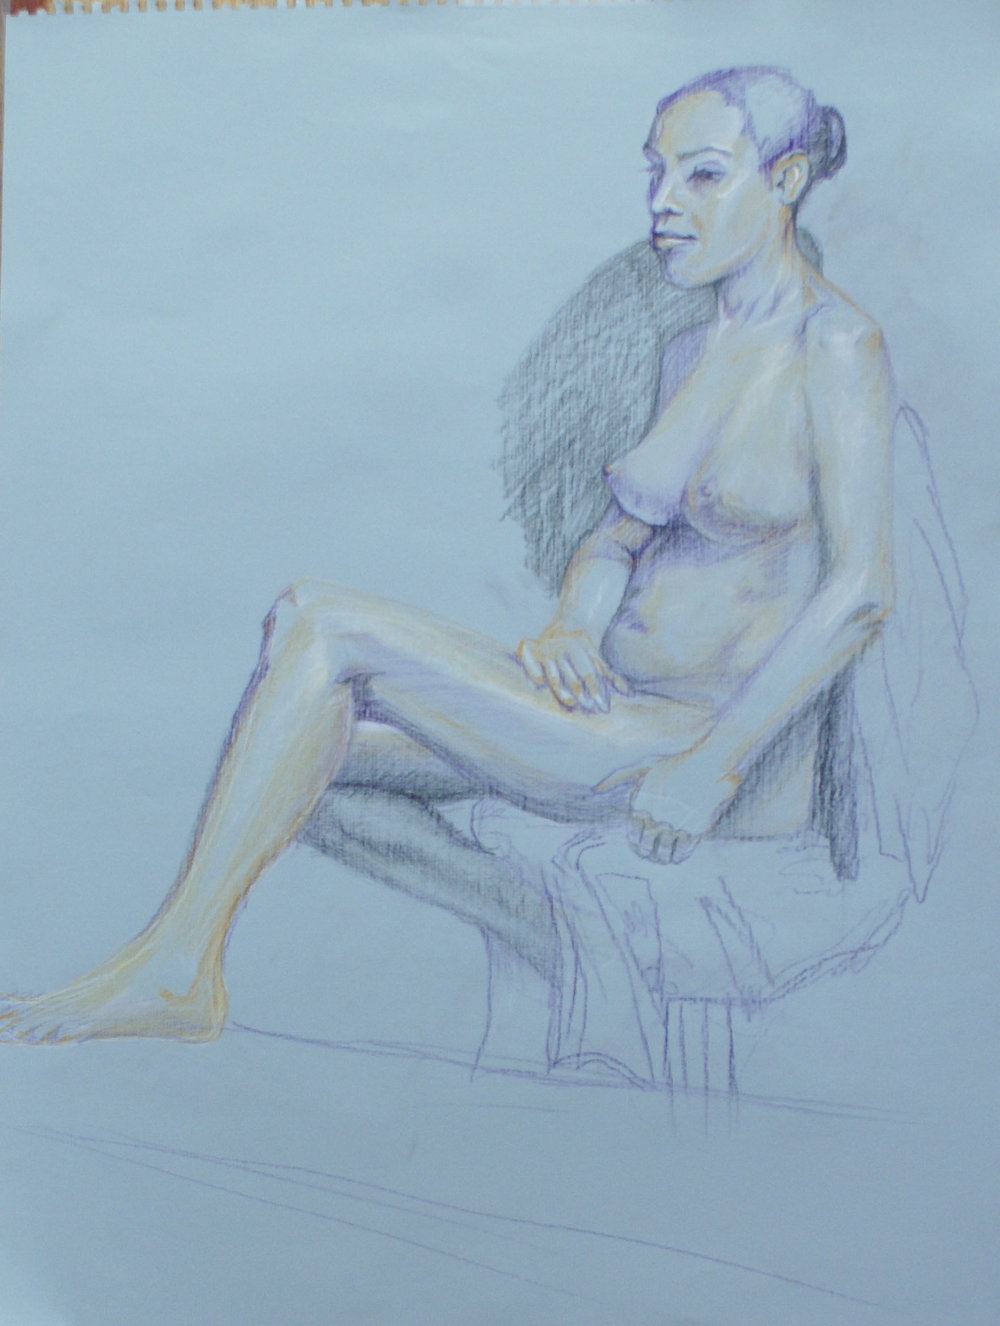 Orlando Rodriguez. Anatomy and Figure Drawing II. Color pencil, marker, graphite on toned paper. 18 x 24 in.